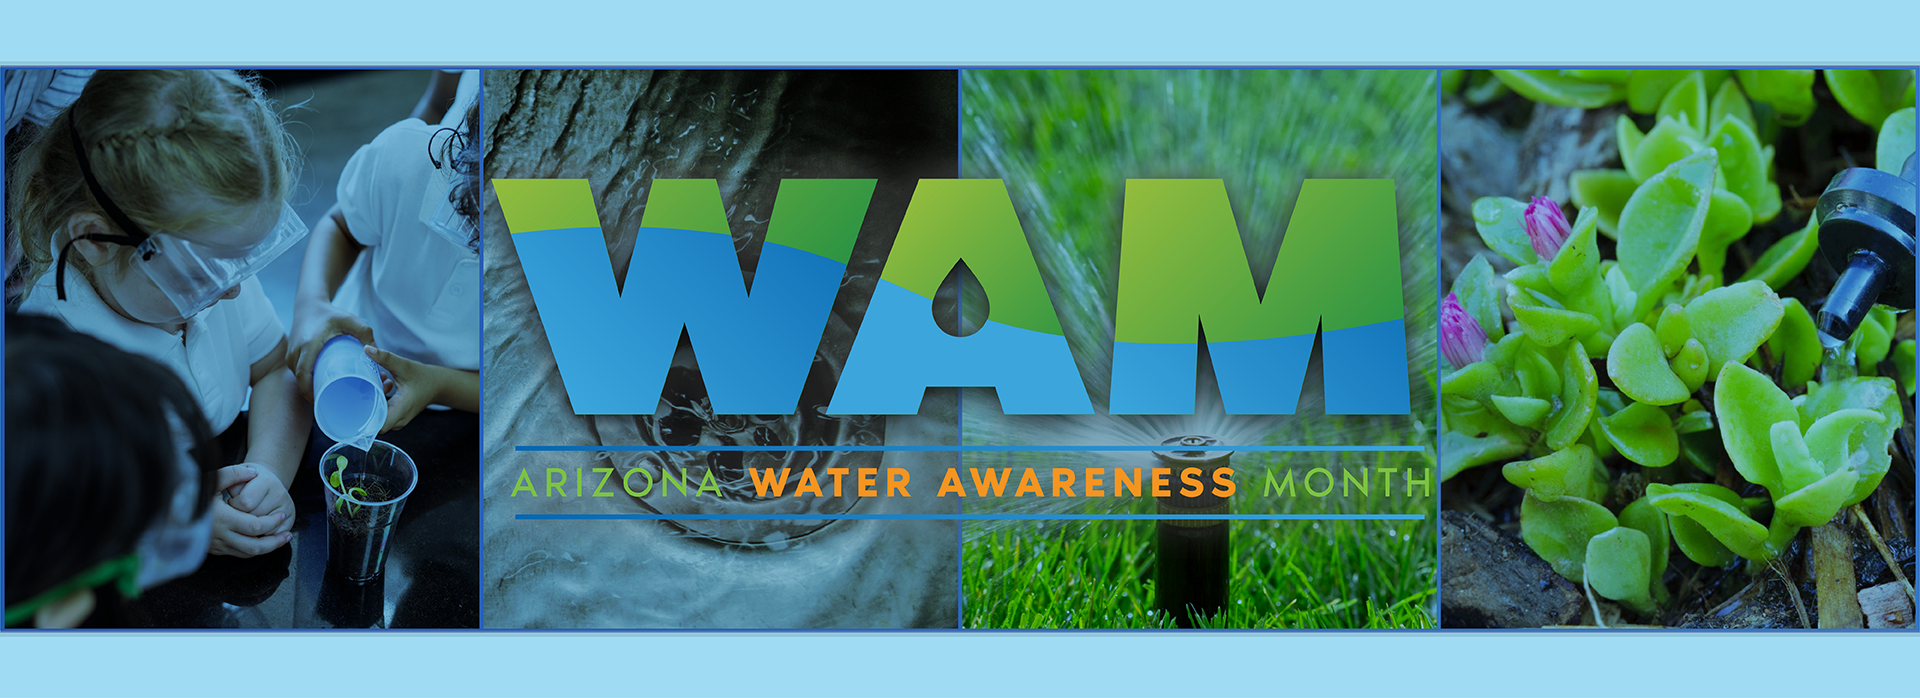 Arizona Water Awareness Month